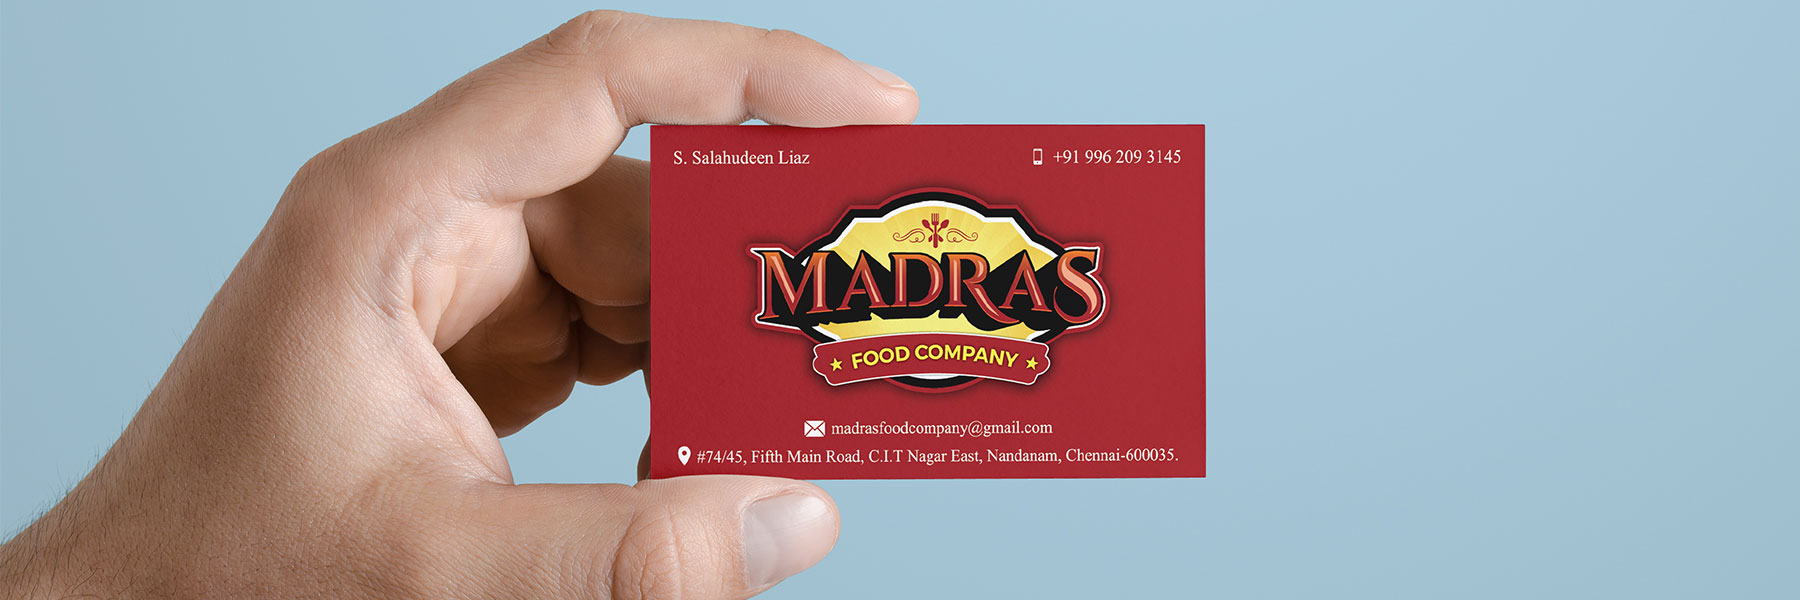 Madras Food Company